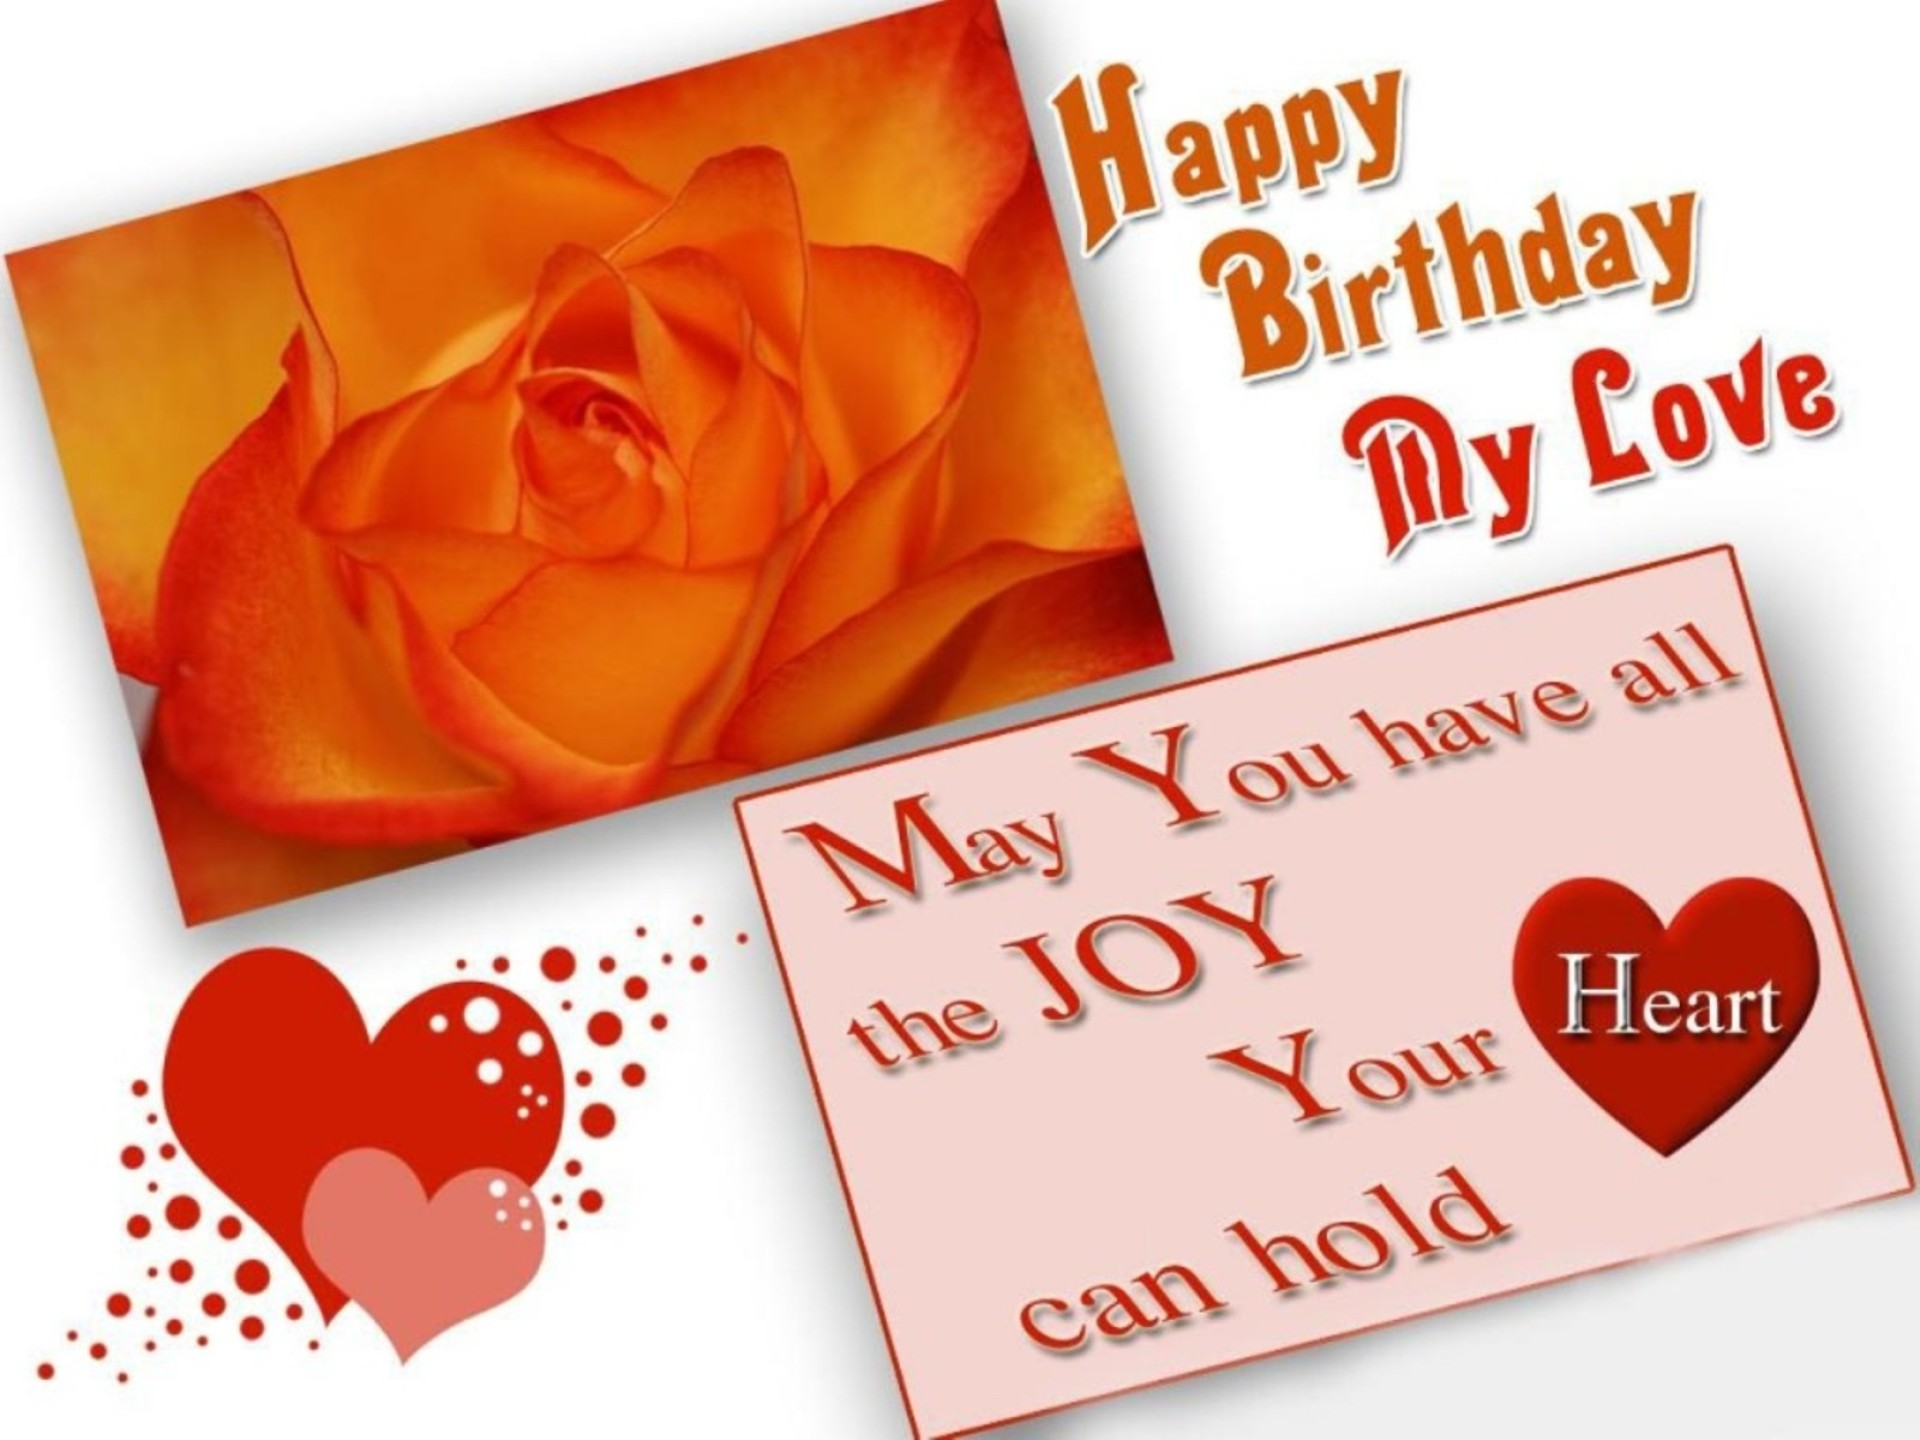 birthday wishes wallpapers with quotes ; the-collection-of-romantic-birthday-wishes-that-can-make-your-wife-touched-3